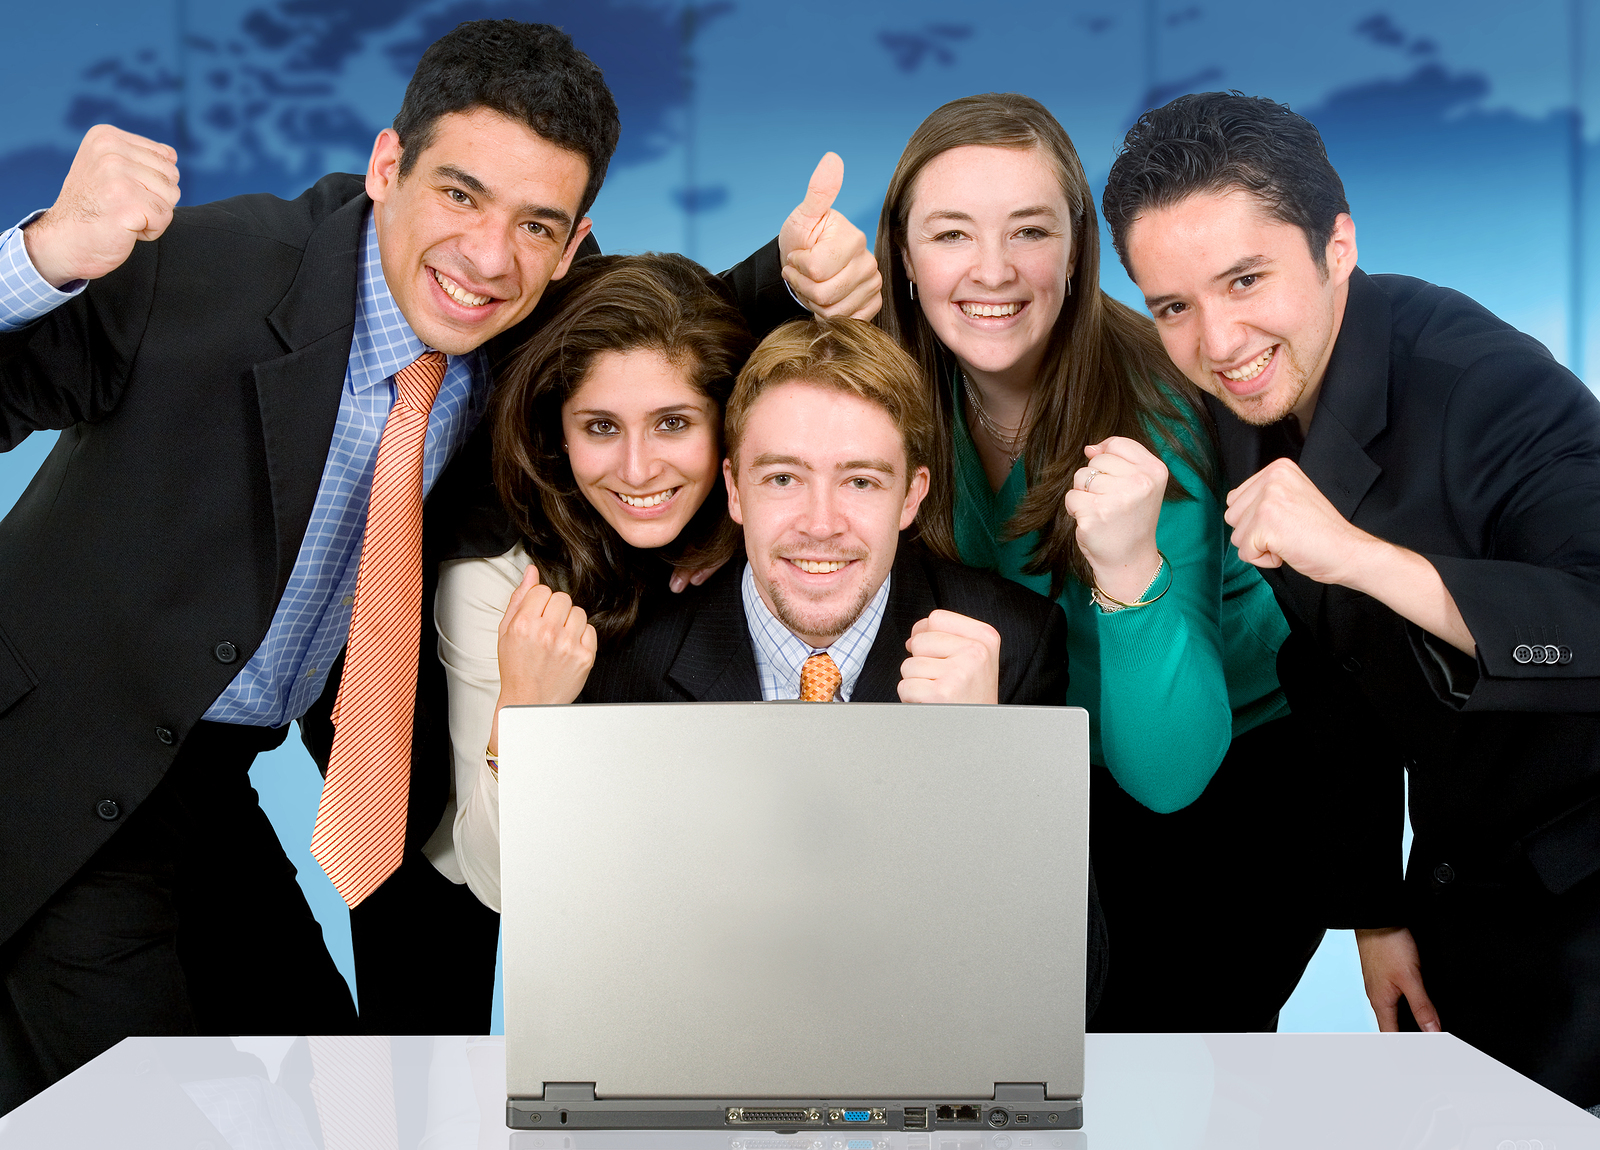 bigstock-Business-Success-Team-In-An-Of-1778280